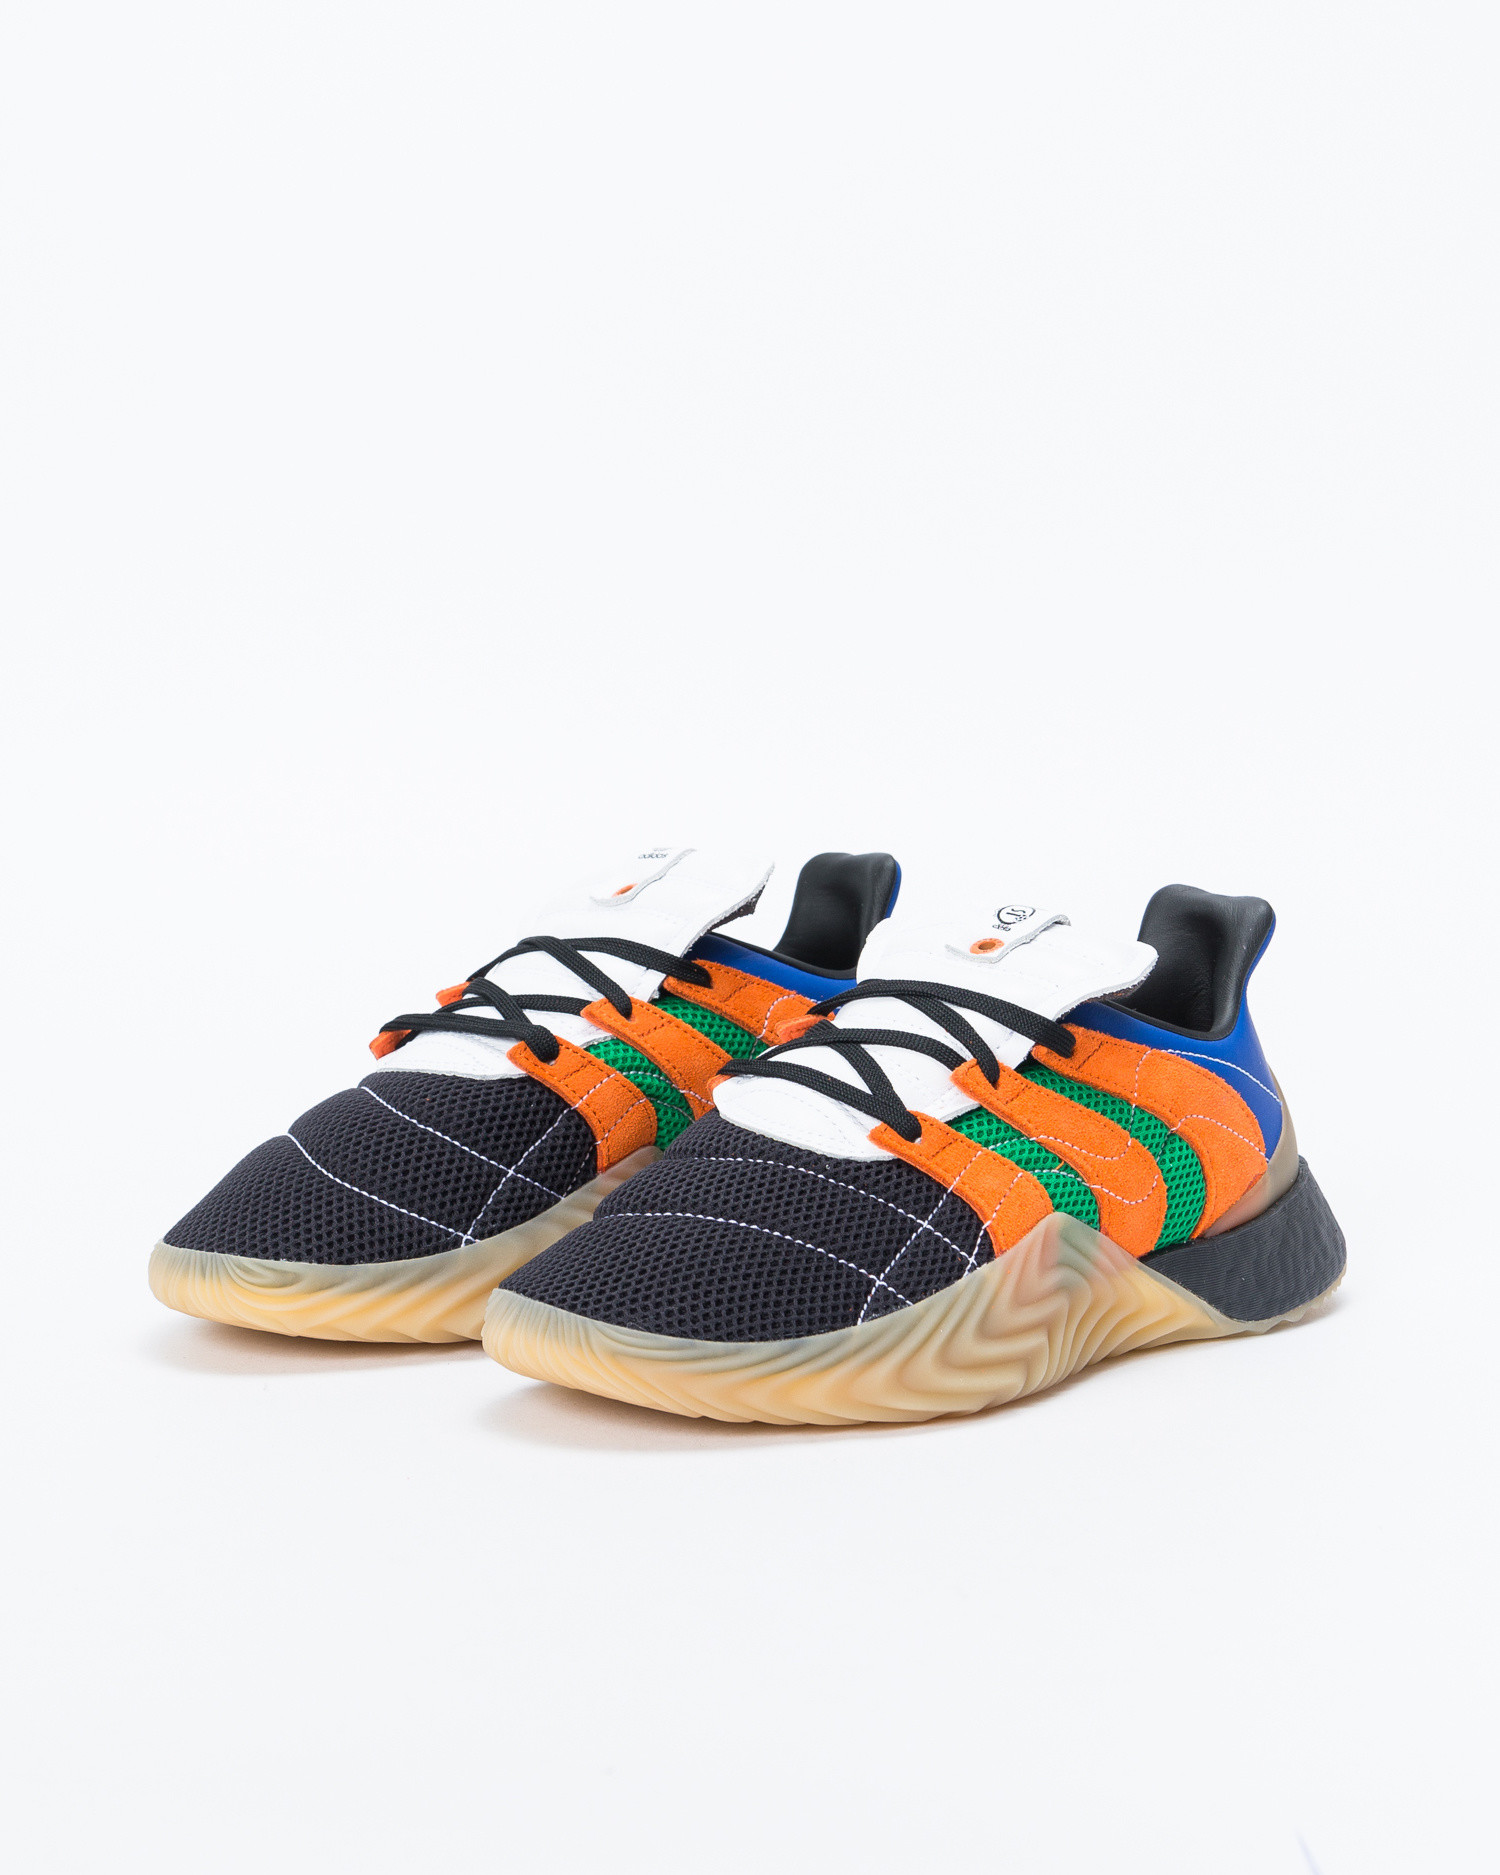 Adidas x SVD Sobakov Boost Core Black/Multi-Color/Gum